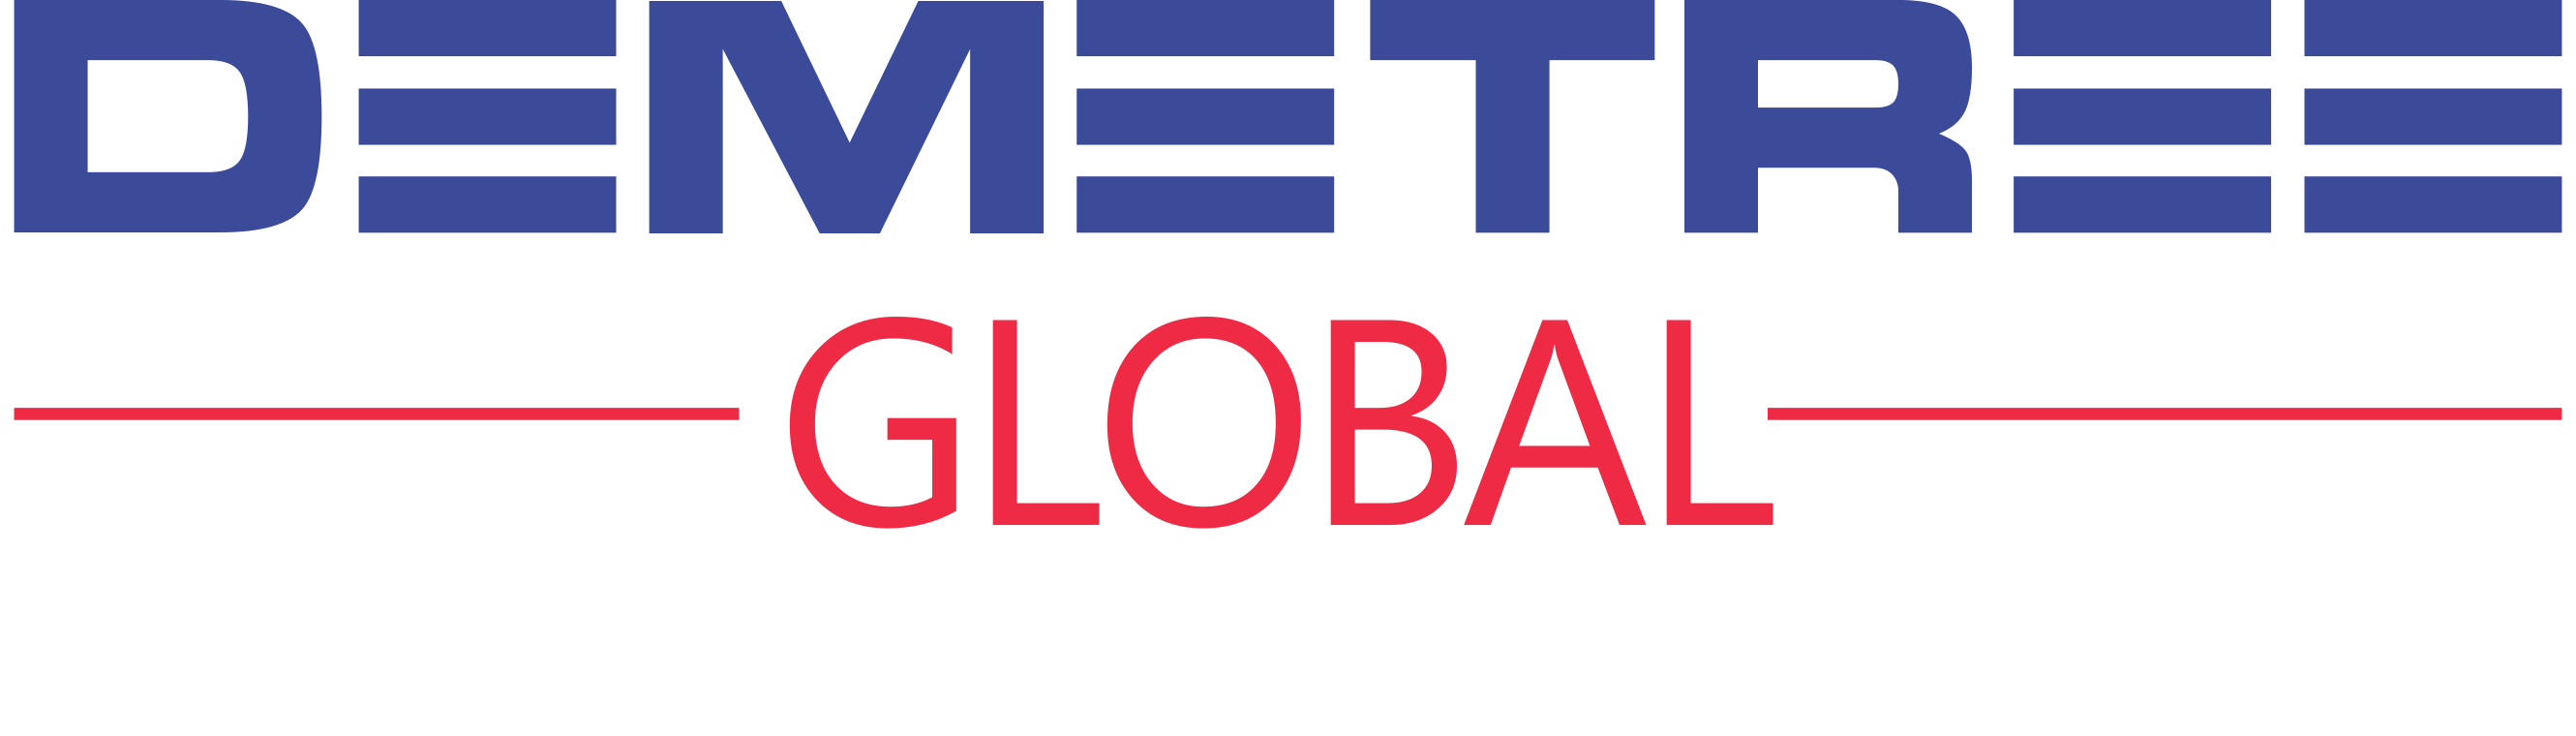 Demetree Global logo